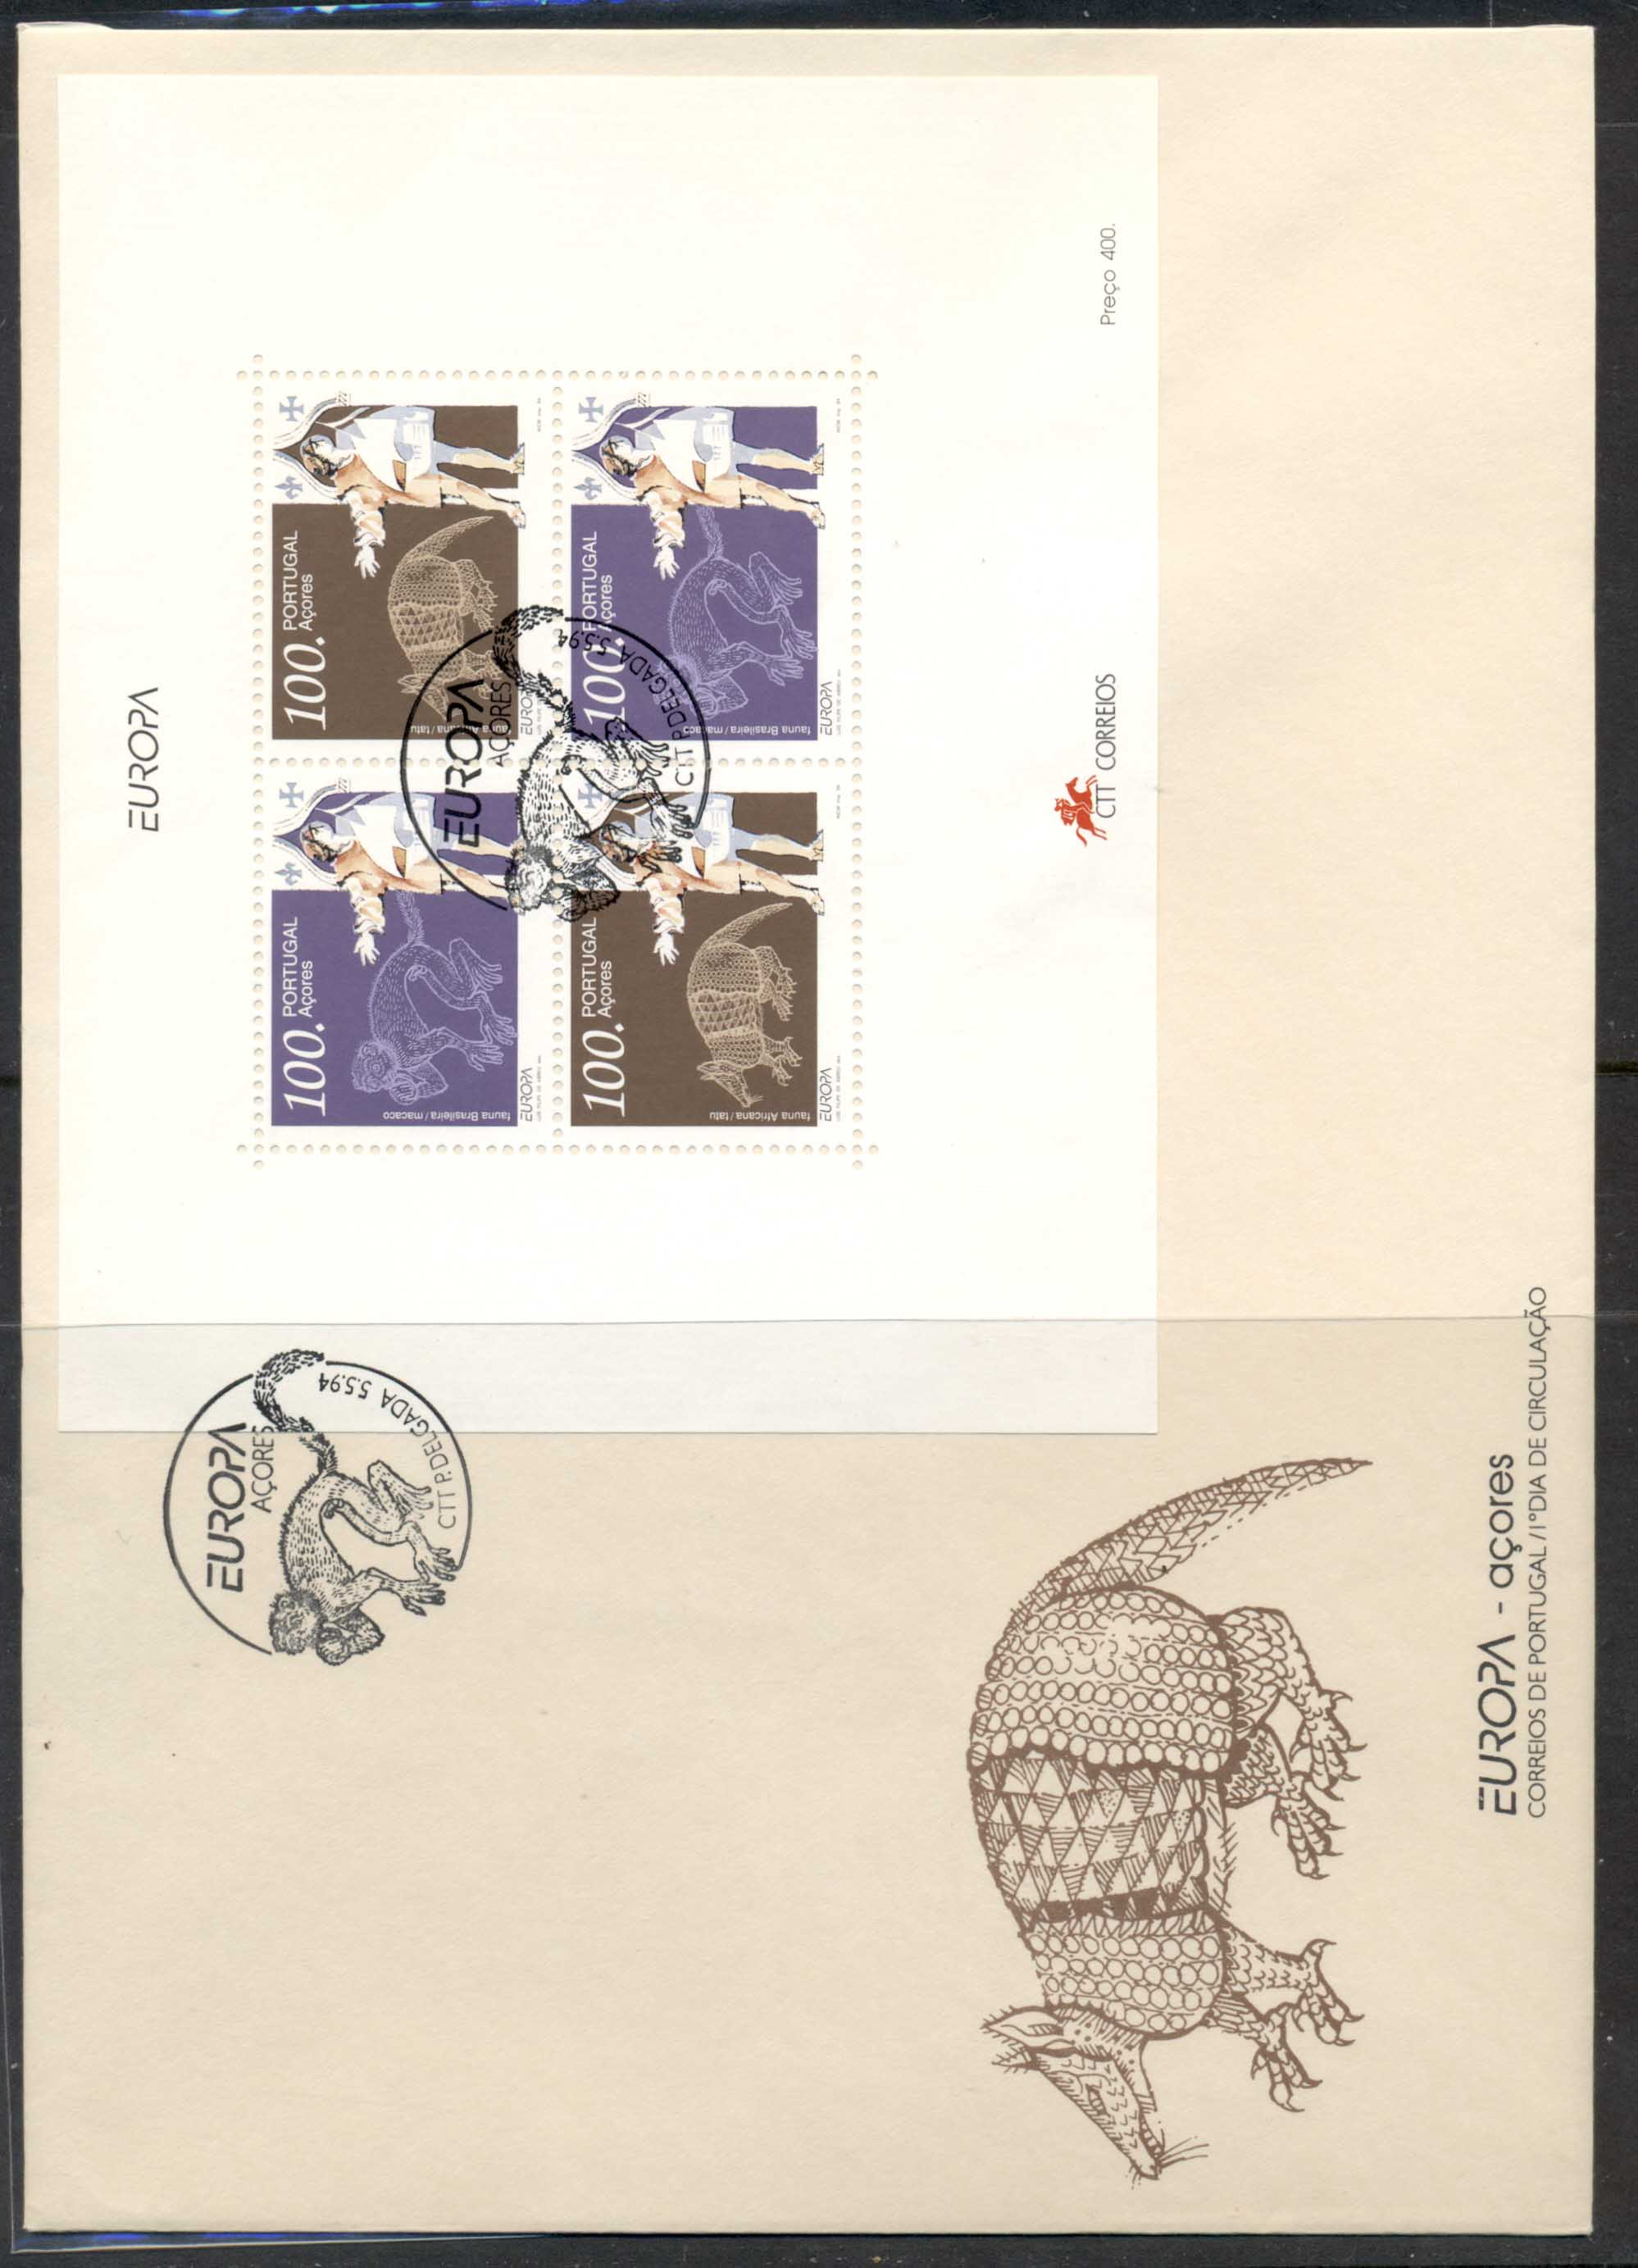 Azores 1994 Europa Scientific Discoveries XLMS FDC